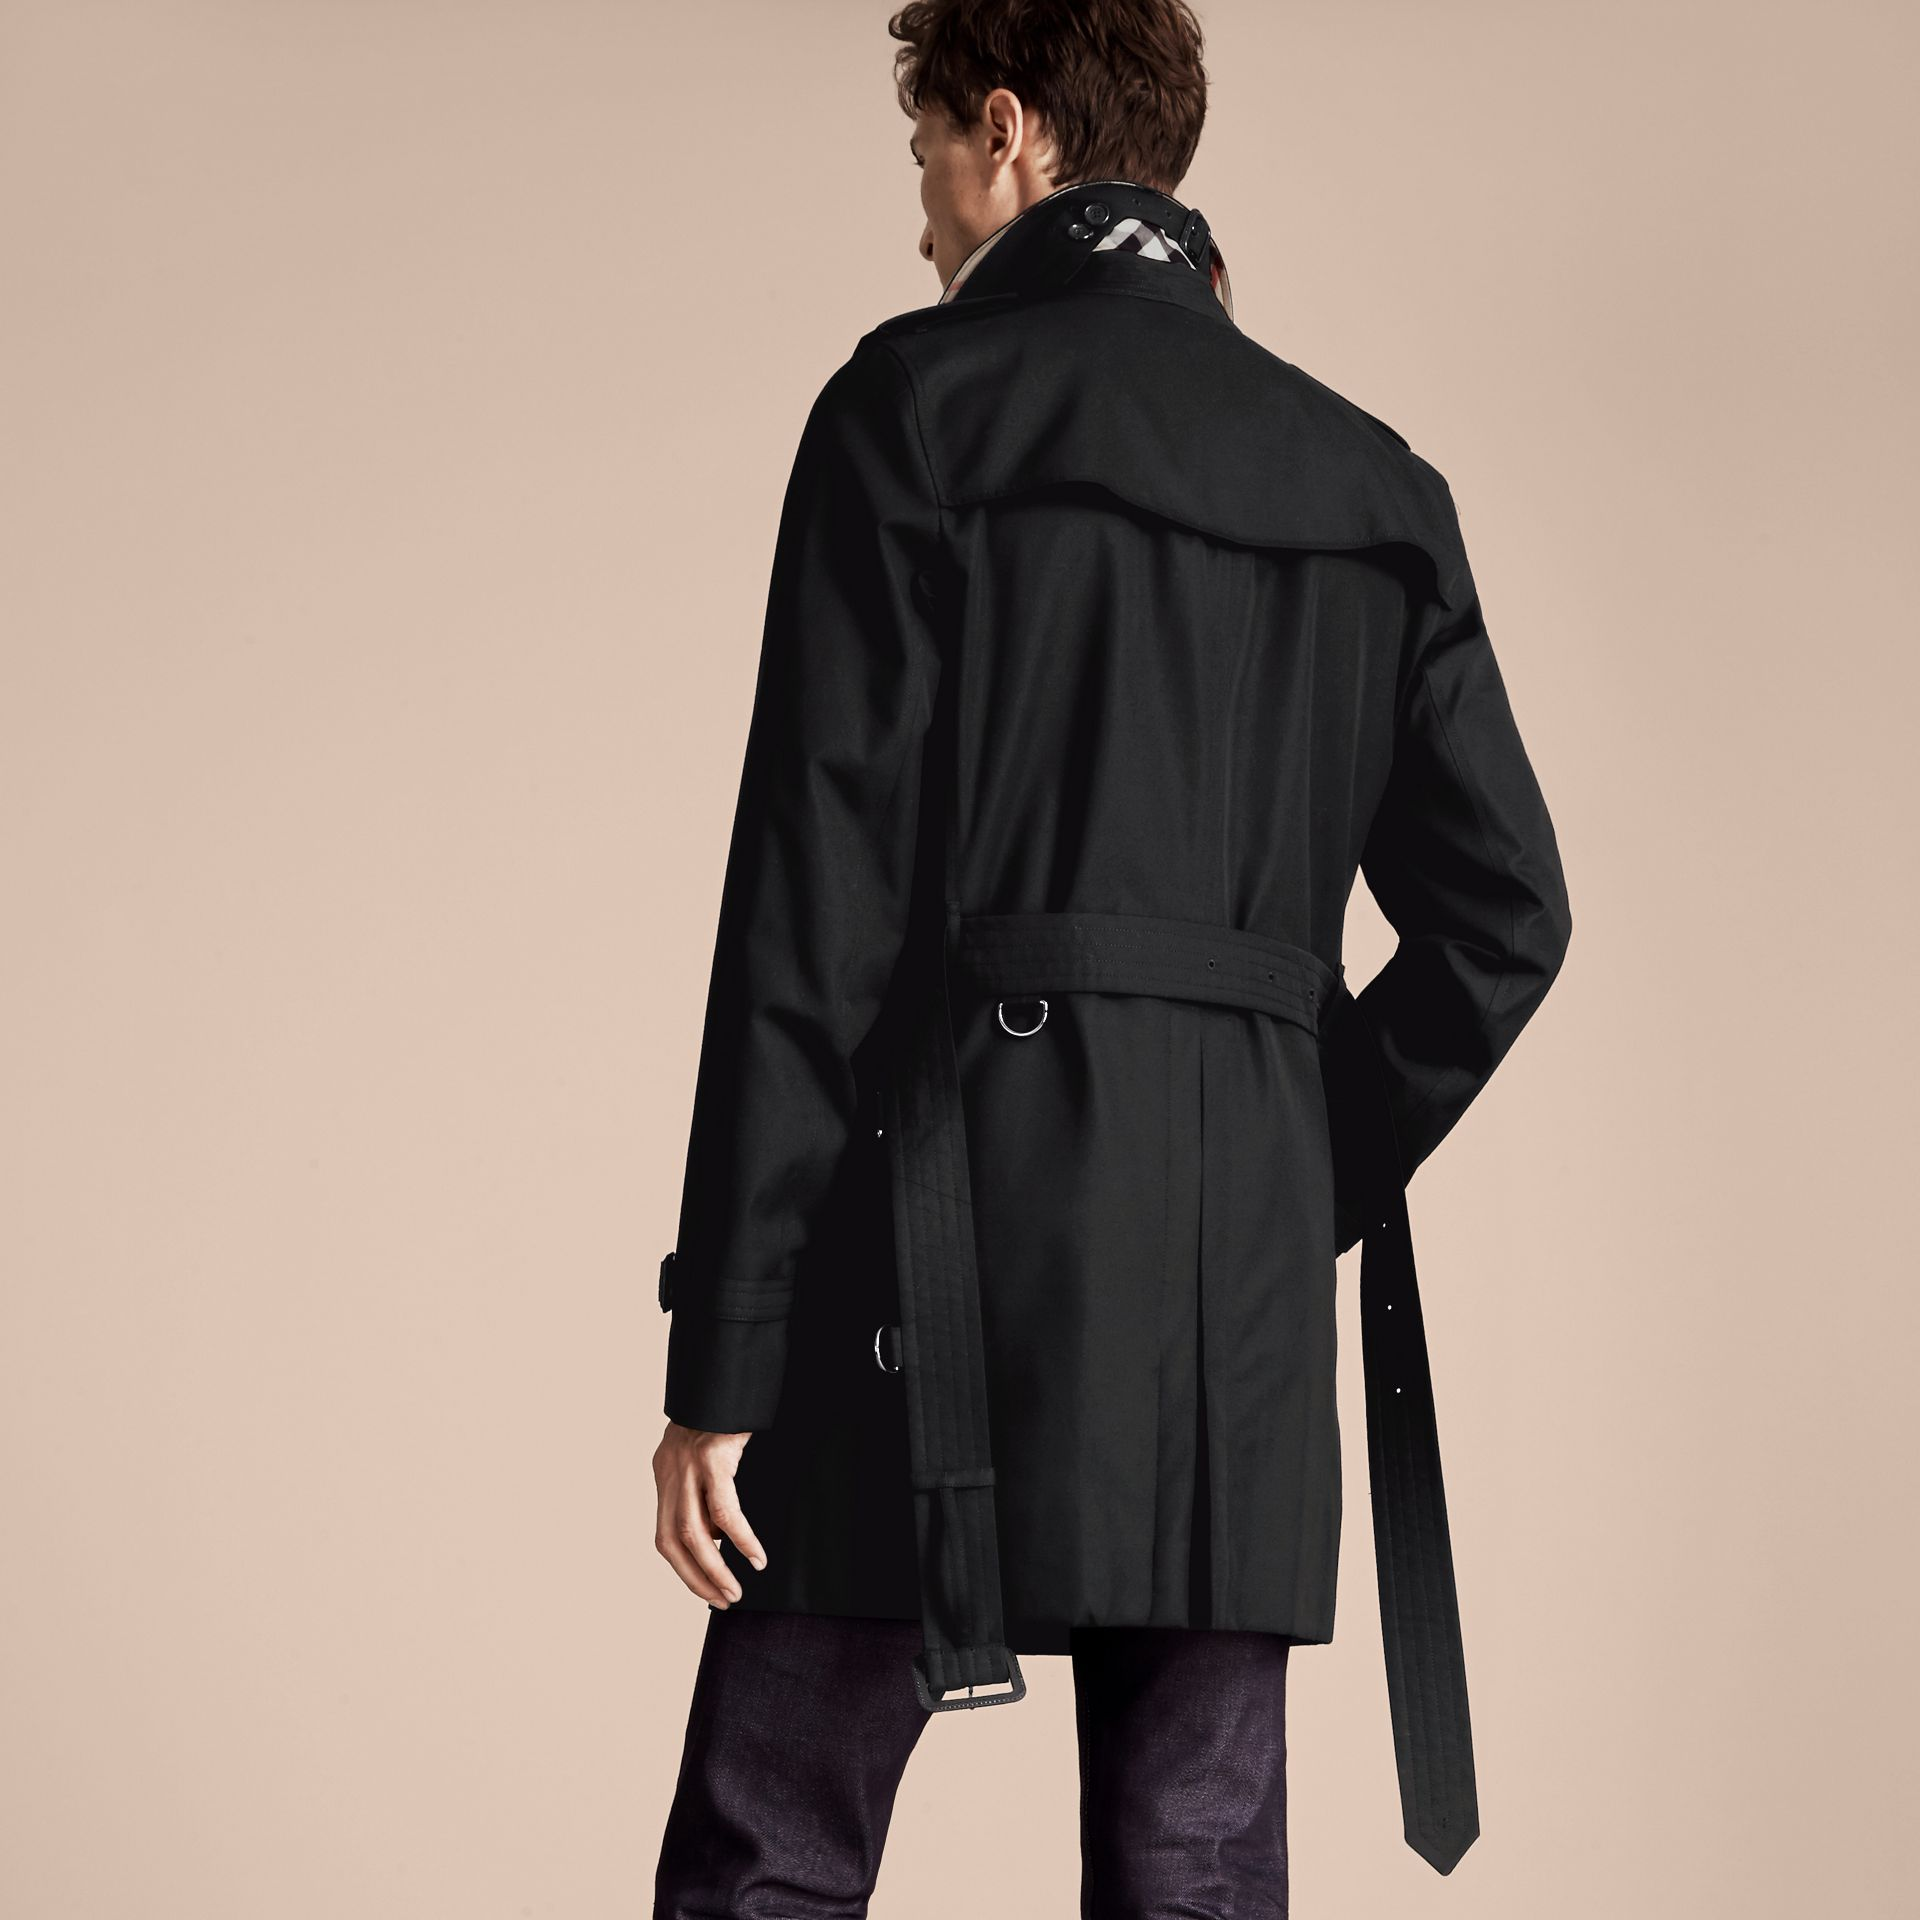 Black The Kensington – Mid-Length Heritage Trench Coat Black - gallery image 3